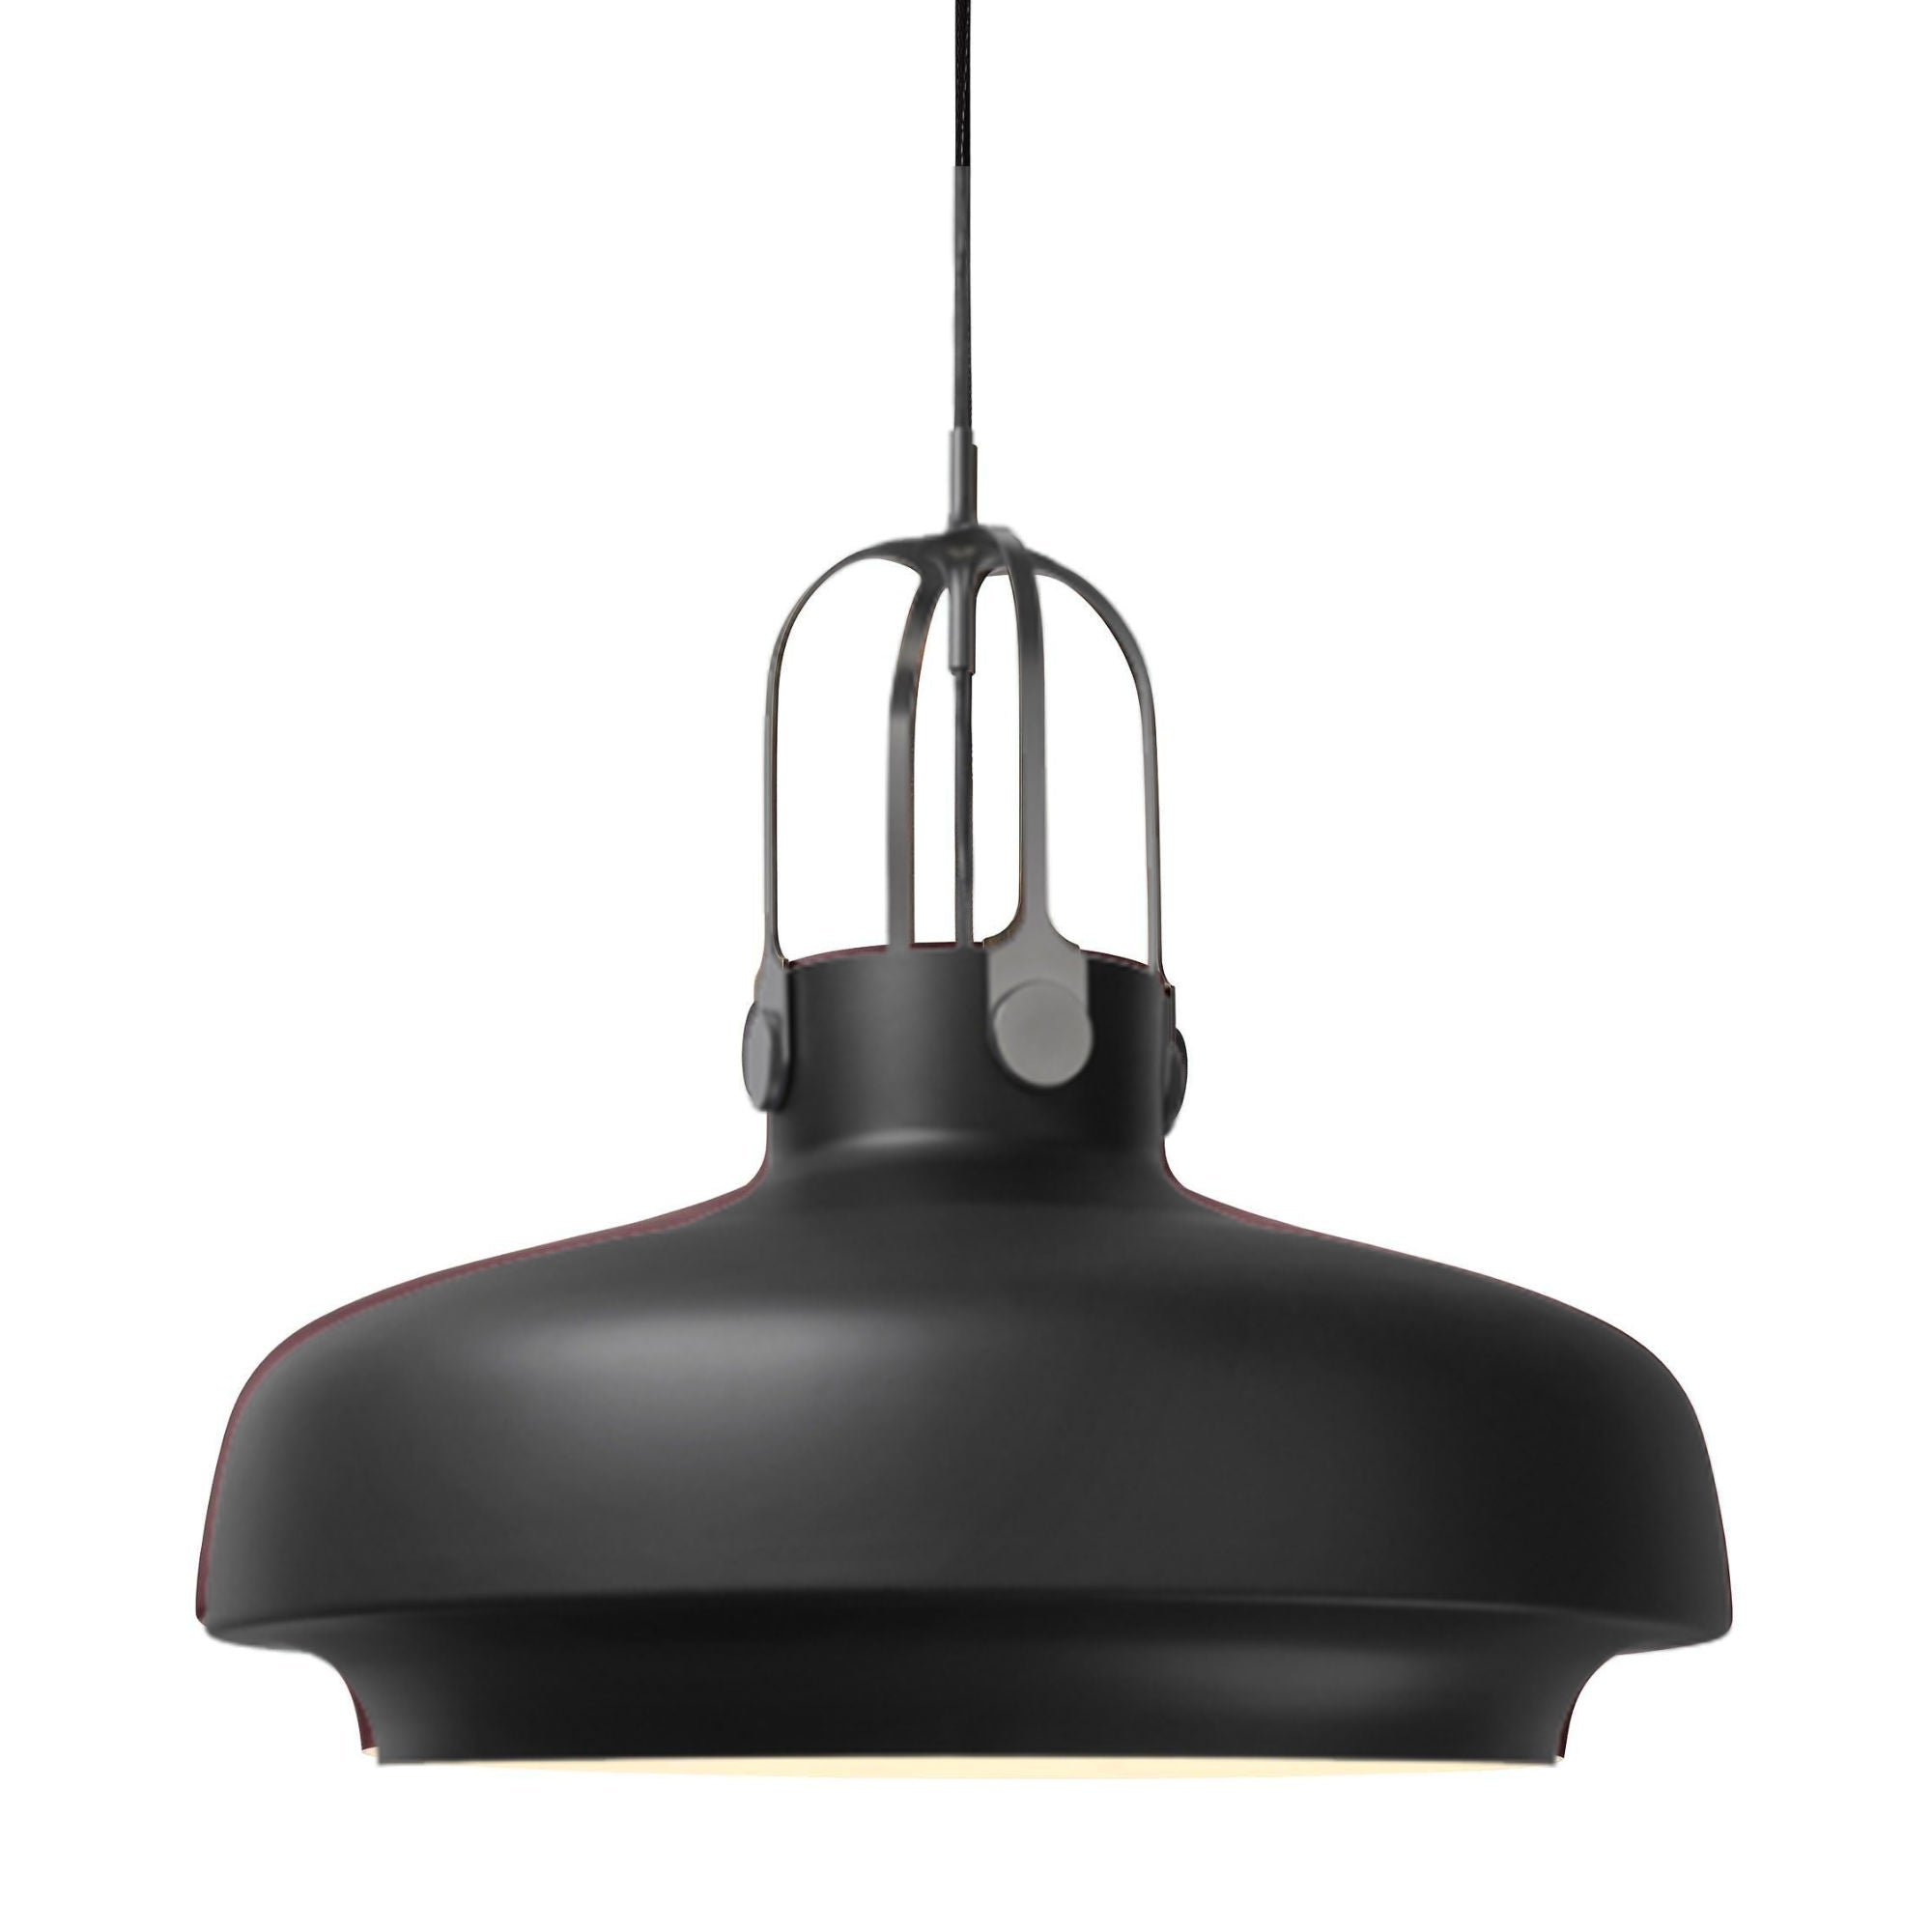 &Tradition SC8 Copenhagen pendant light, matt black - silver suspension